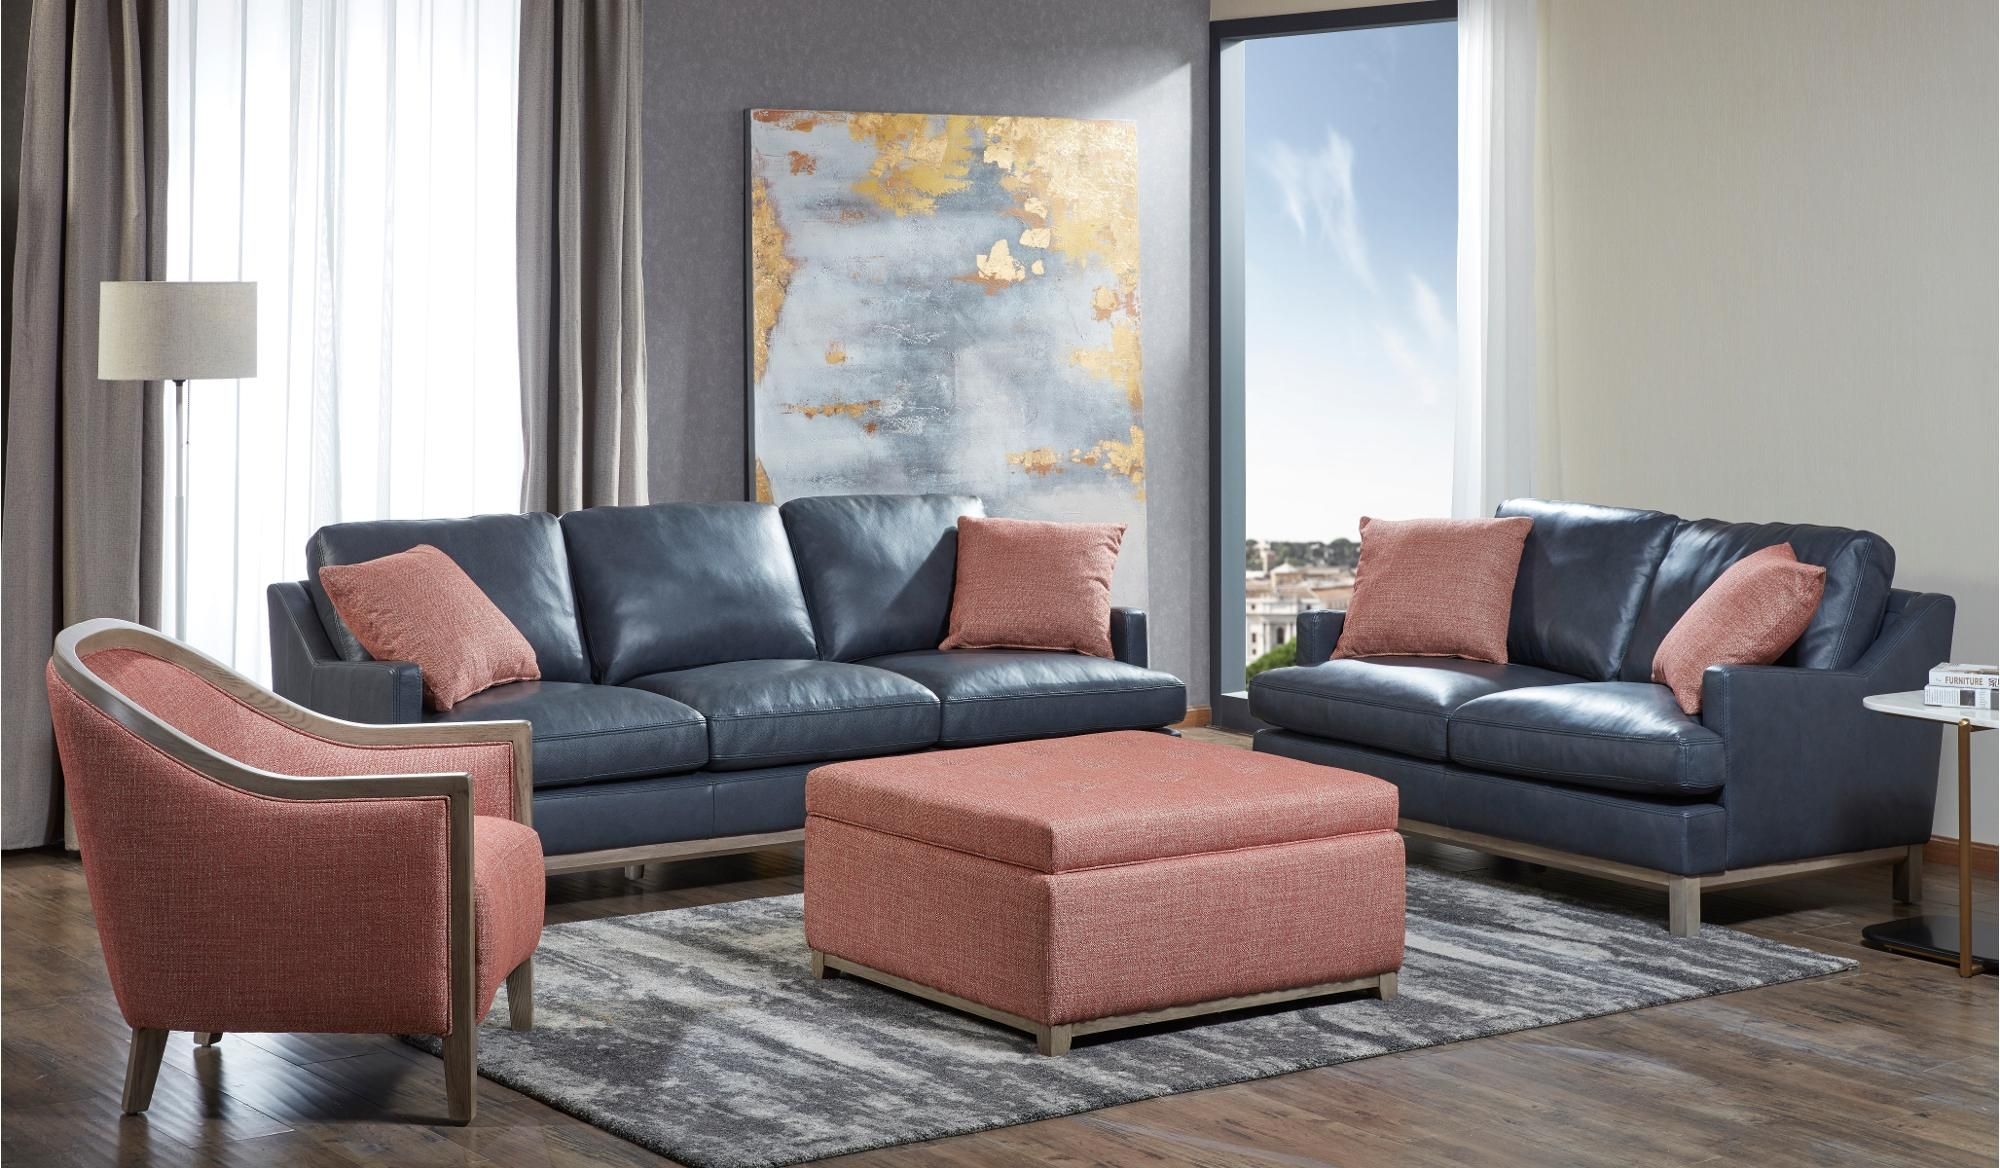 The Classic Tailored Look Of The Westport Lining Room Group Is Sure To Add A Charming Sophisticated Vibe To Your Hom Blue Leather Sofa Furniture Leather Sofa